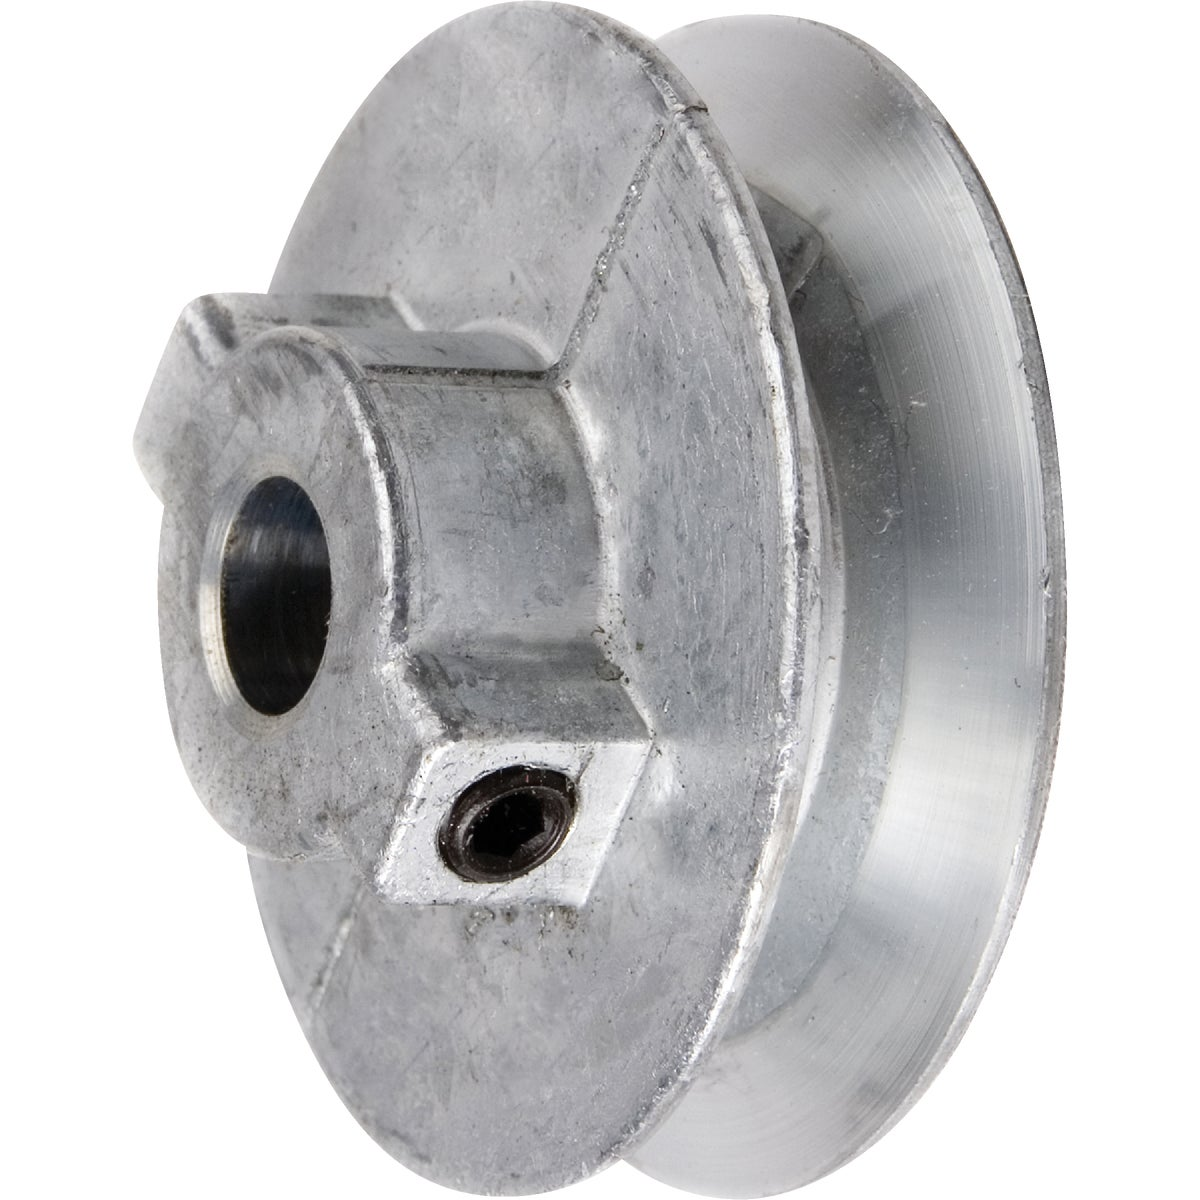 5X5/8 PULLEY